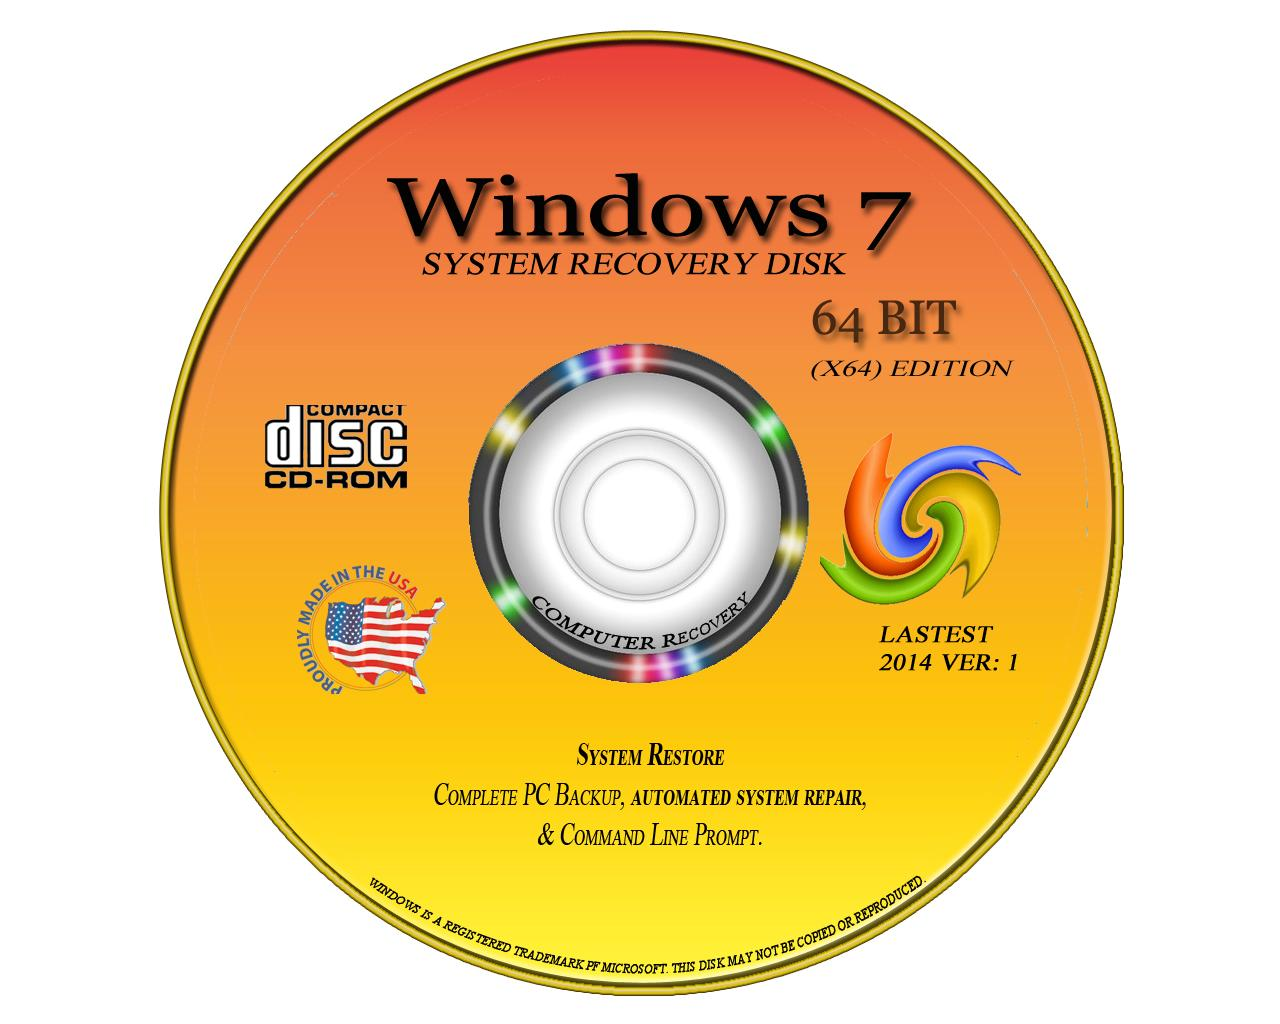 window 7 64 bit system recovery software disc new 2014. Black Bedroom Furniture Sets. Home Design Ideas